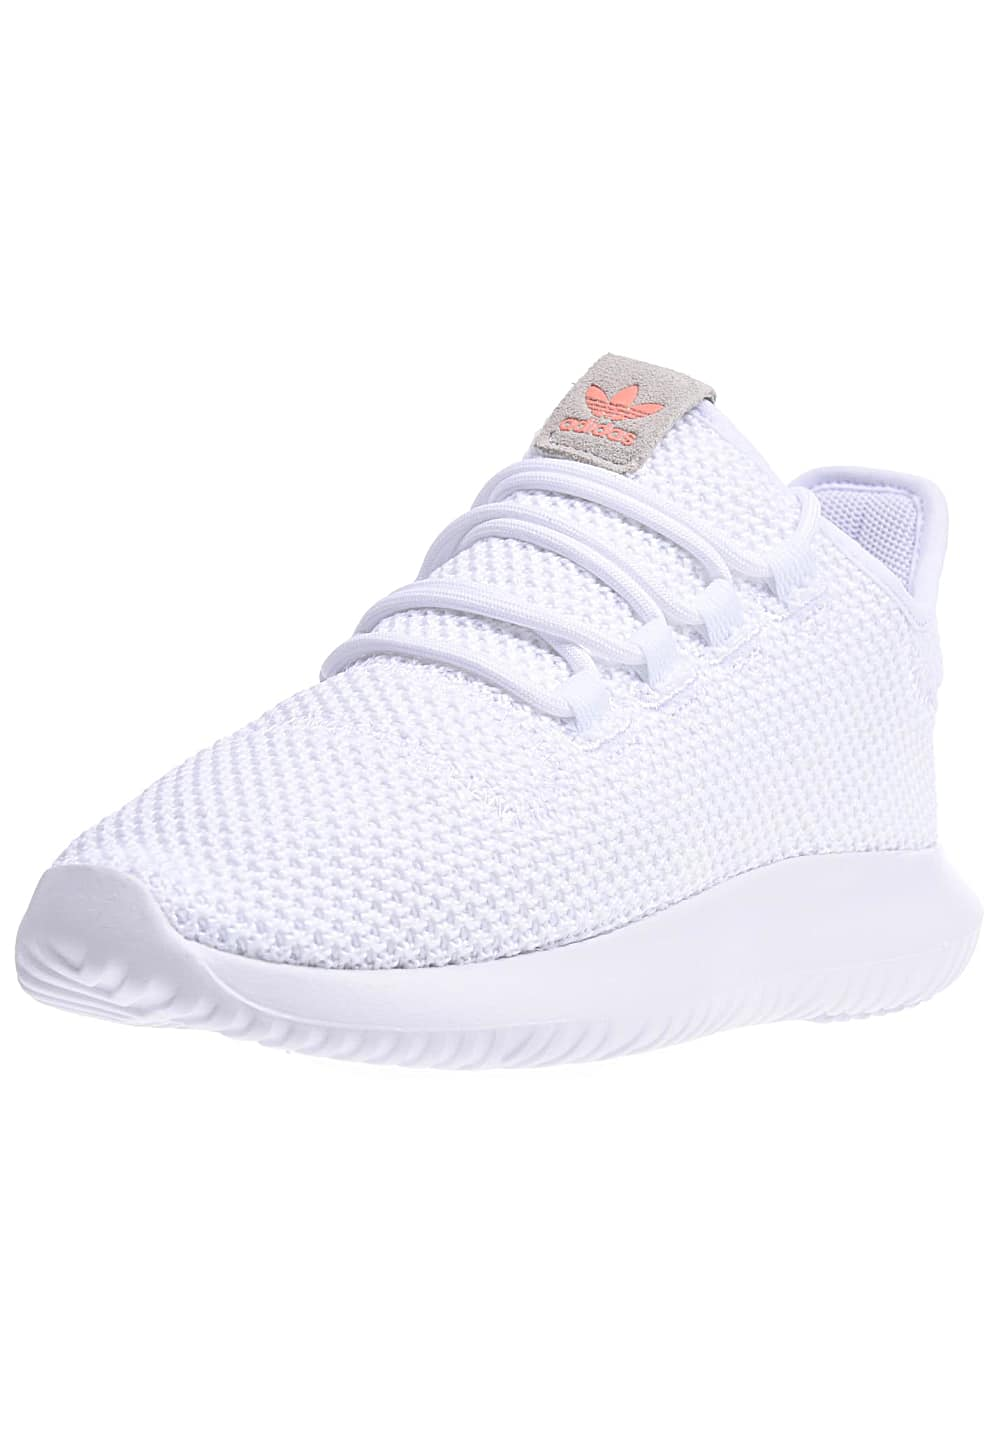 Damen Planet Sneaker Weiß Für Qxbowrcde Shadow Originals Om8vNn0w